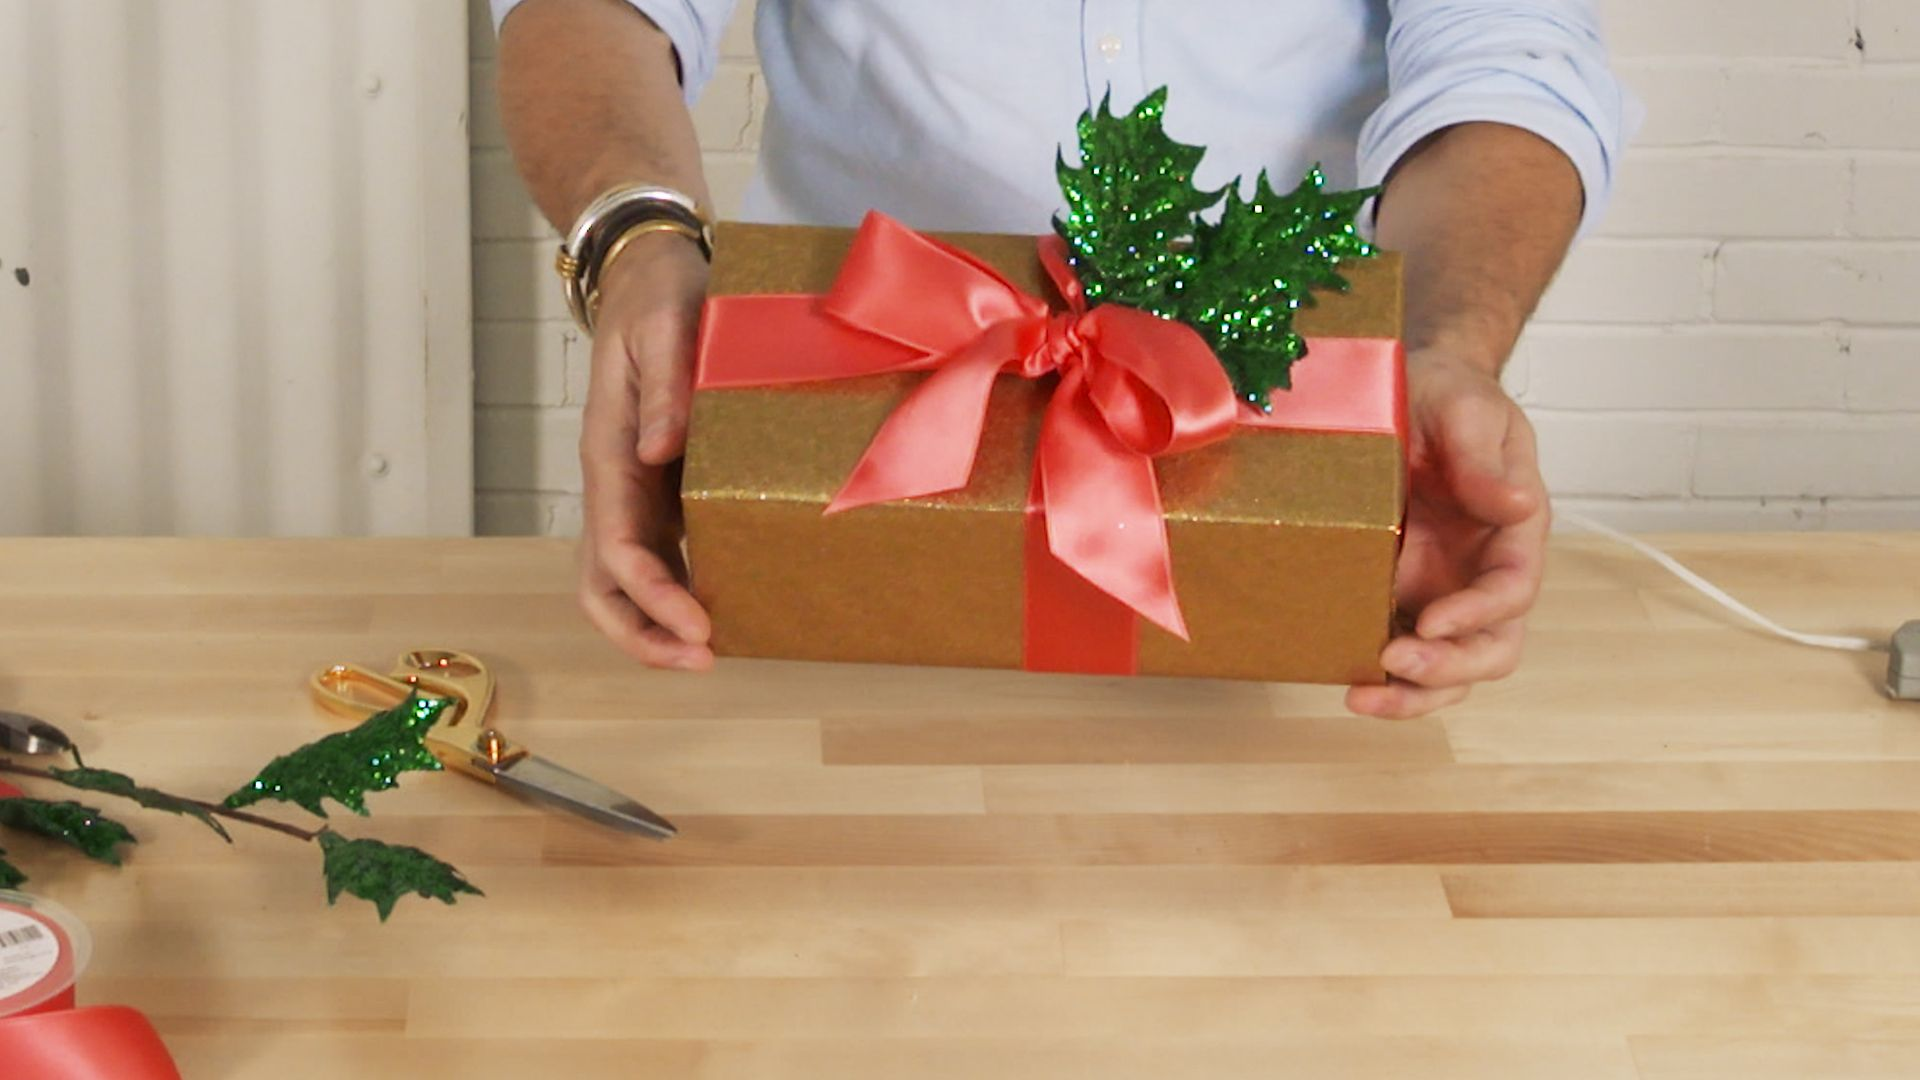 If You're Not Using a Glue Gun to Wrap Presents, You're Doing it Wrong